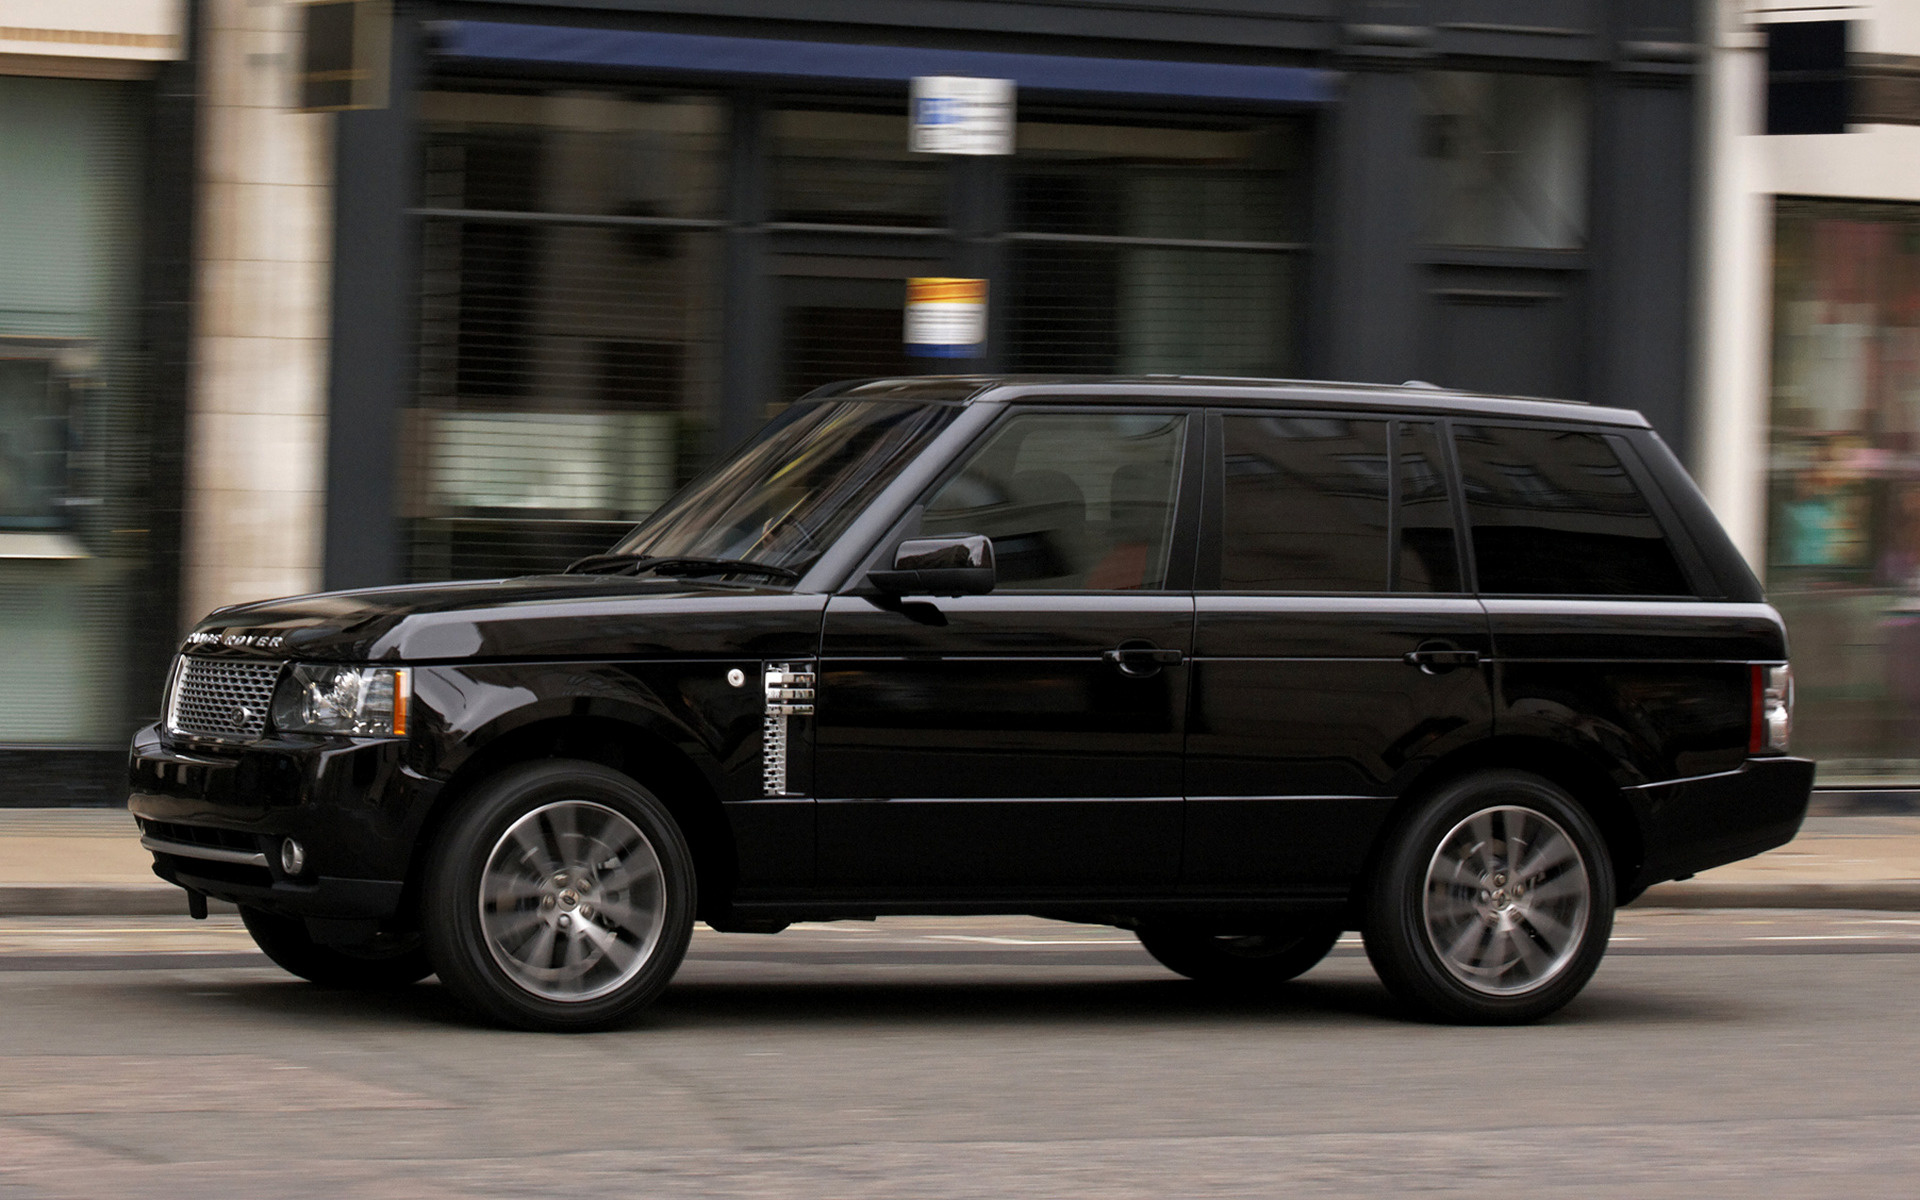 https://www.carpixel.net/w/3b1bbfb121de76b49a5681fcc6863e42/range-rover-autobiography-black-car-wallpaper-37079.jpg